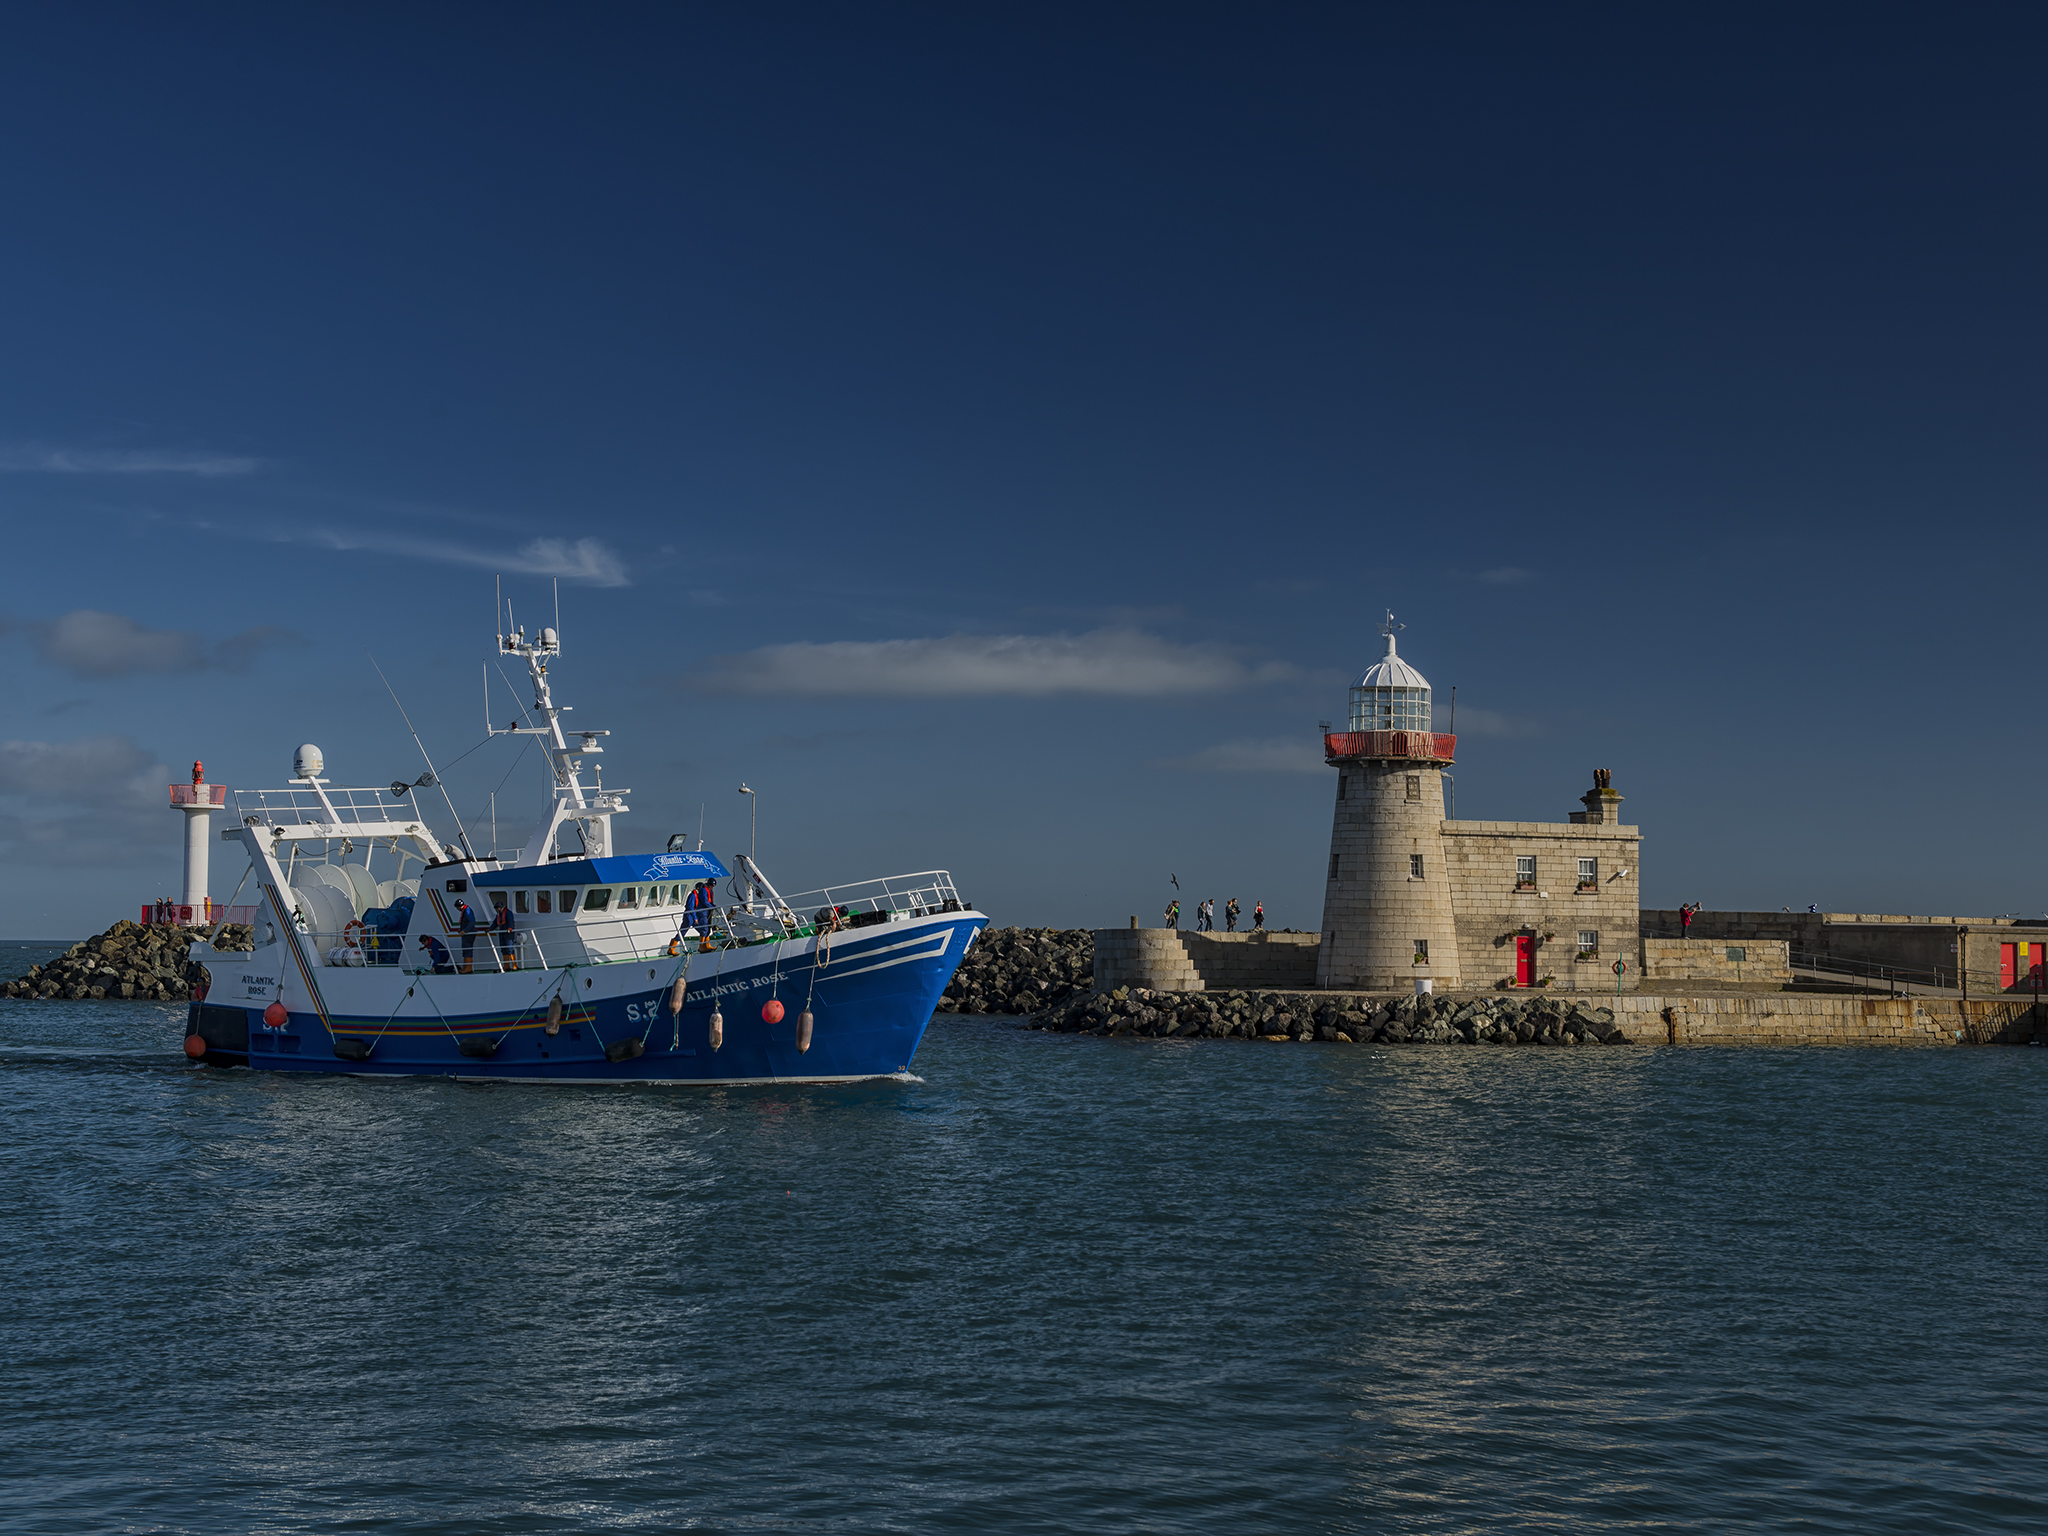 Lighthouse in Howth Marina